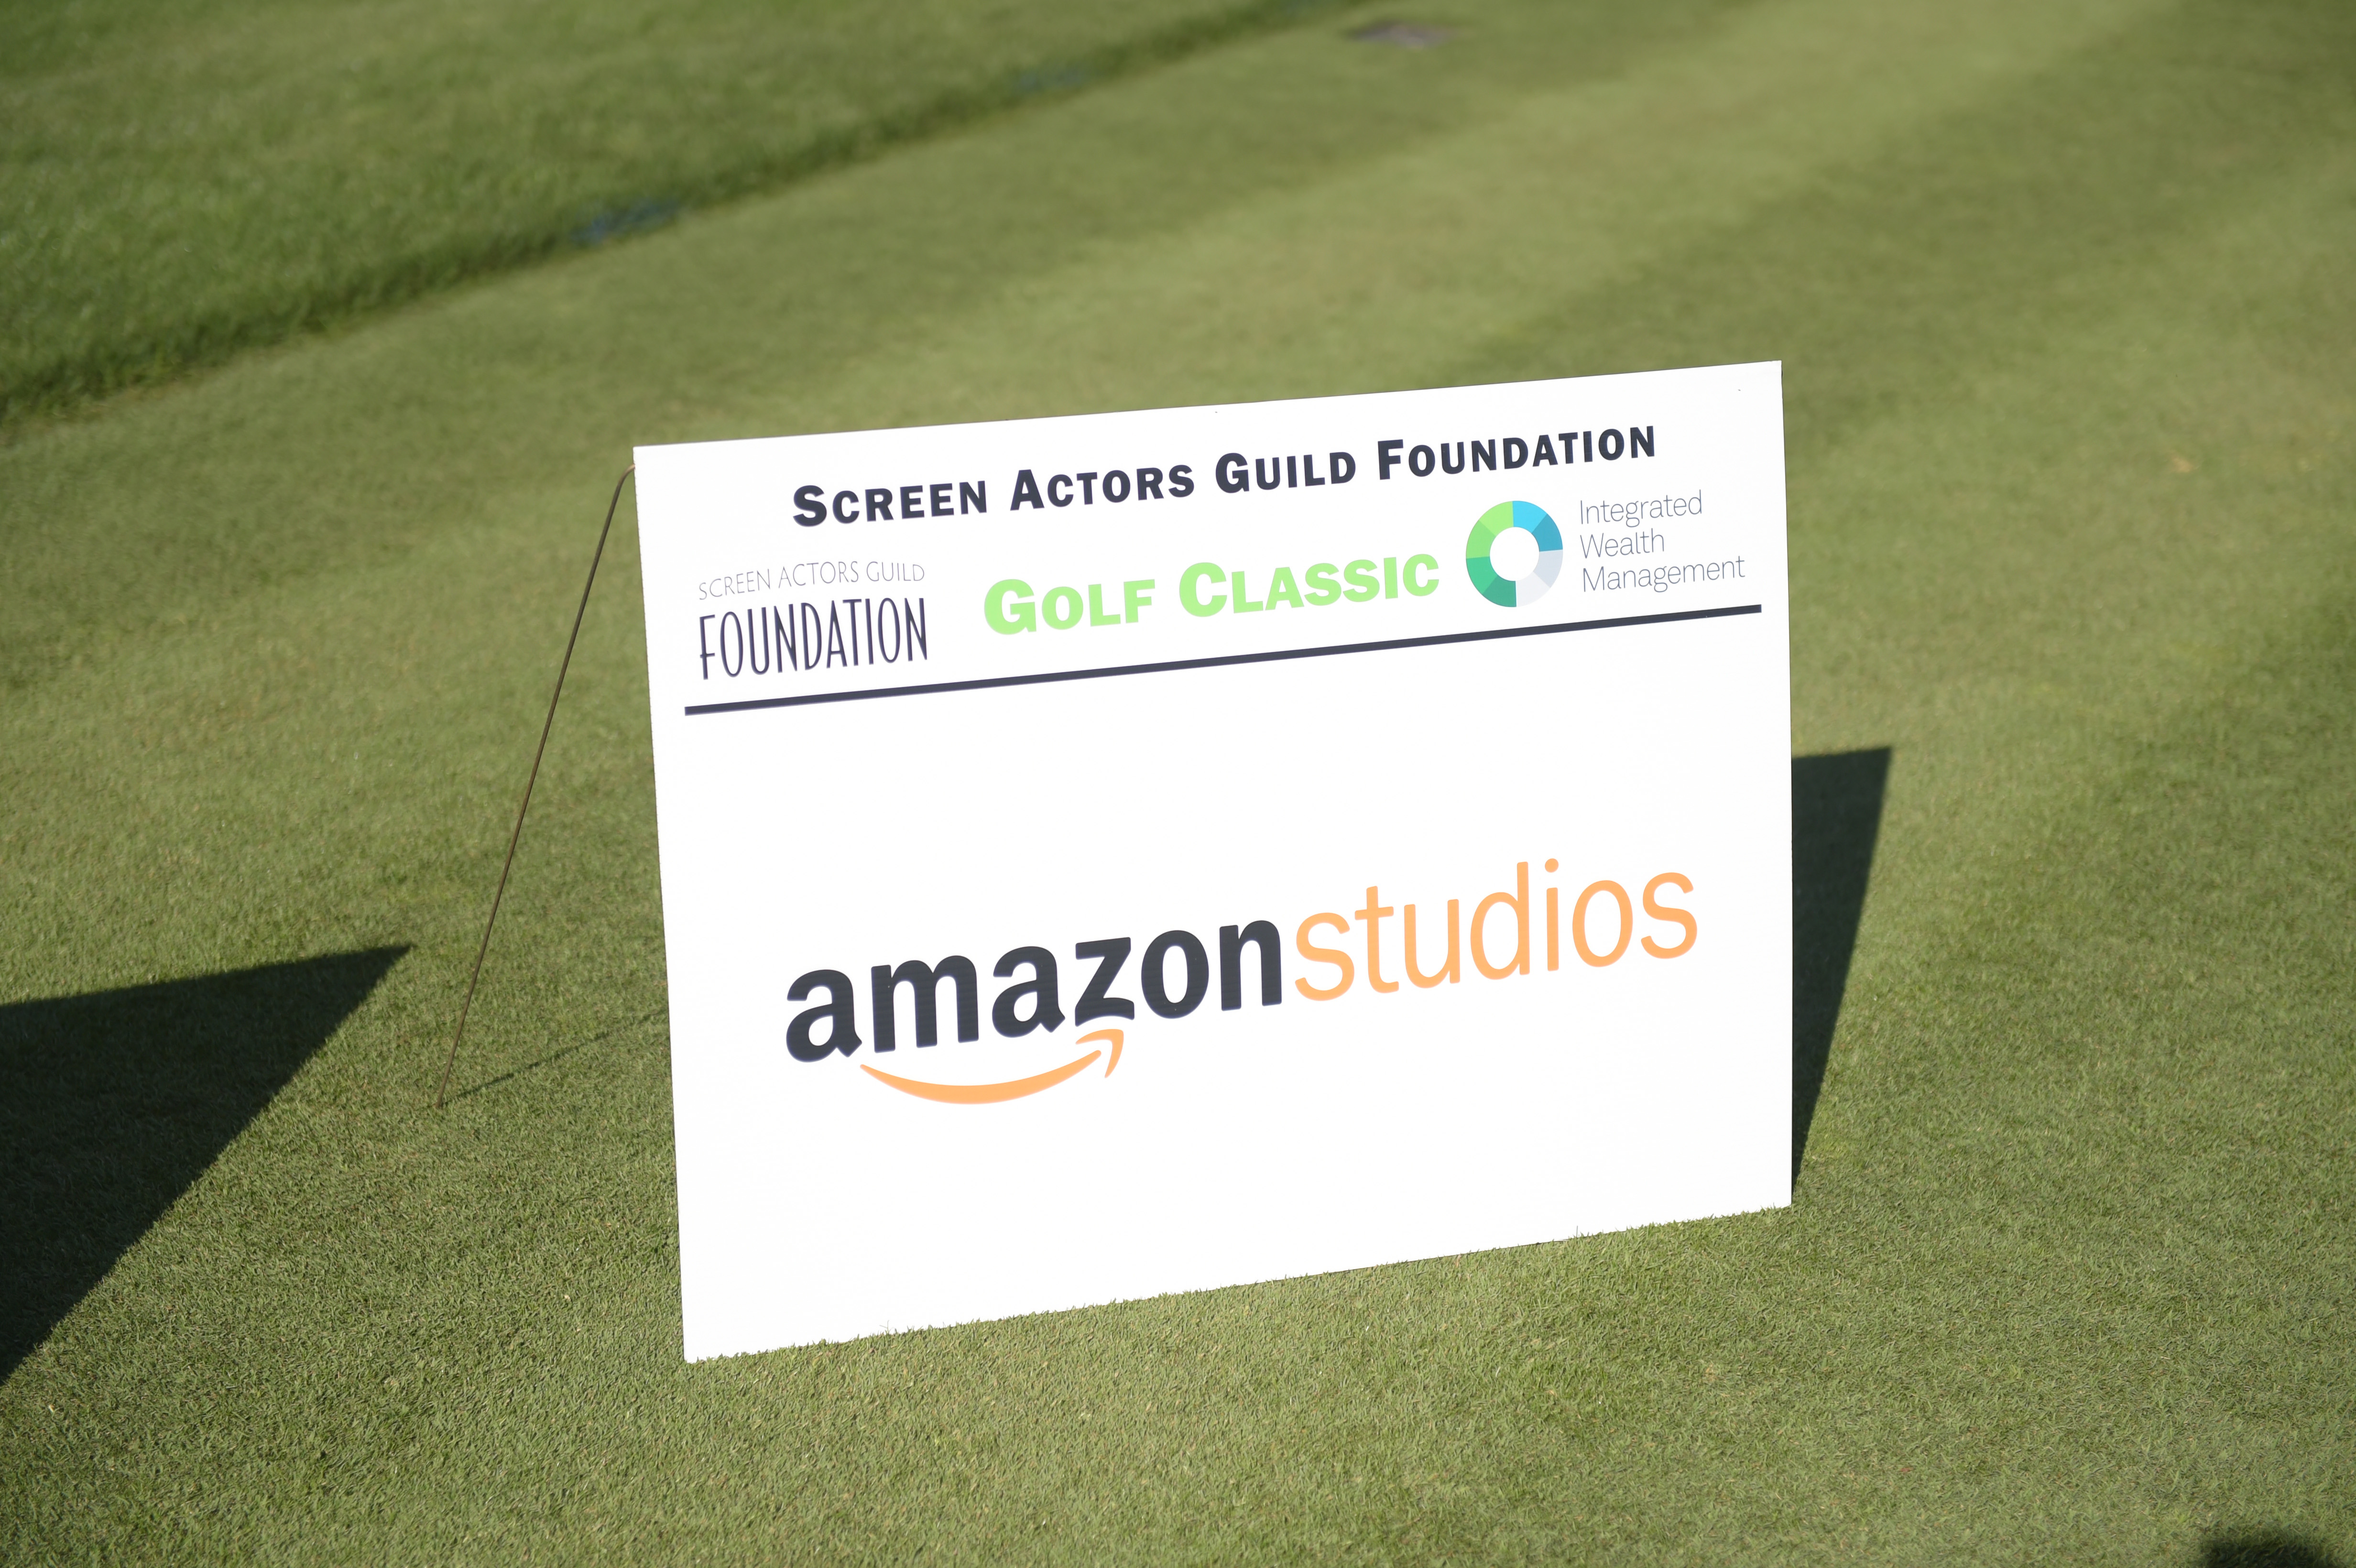 Amazon Studios sponsors The Screen Actors Guild Foundation's 6th Annual Los Angeles Golf Classic. (Photo by Jason Kempin/Getty Images for The Screen Actors Guild Foundation)